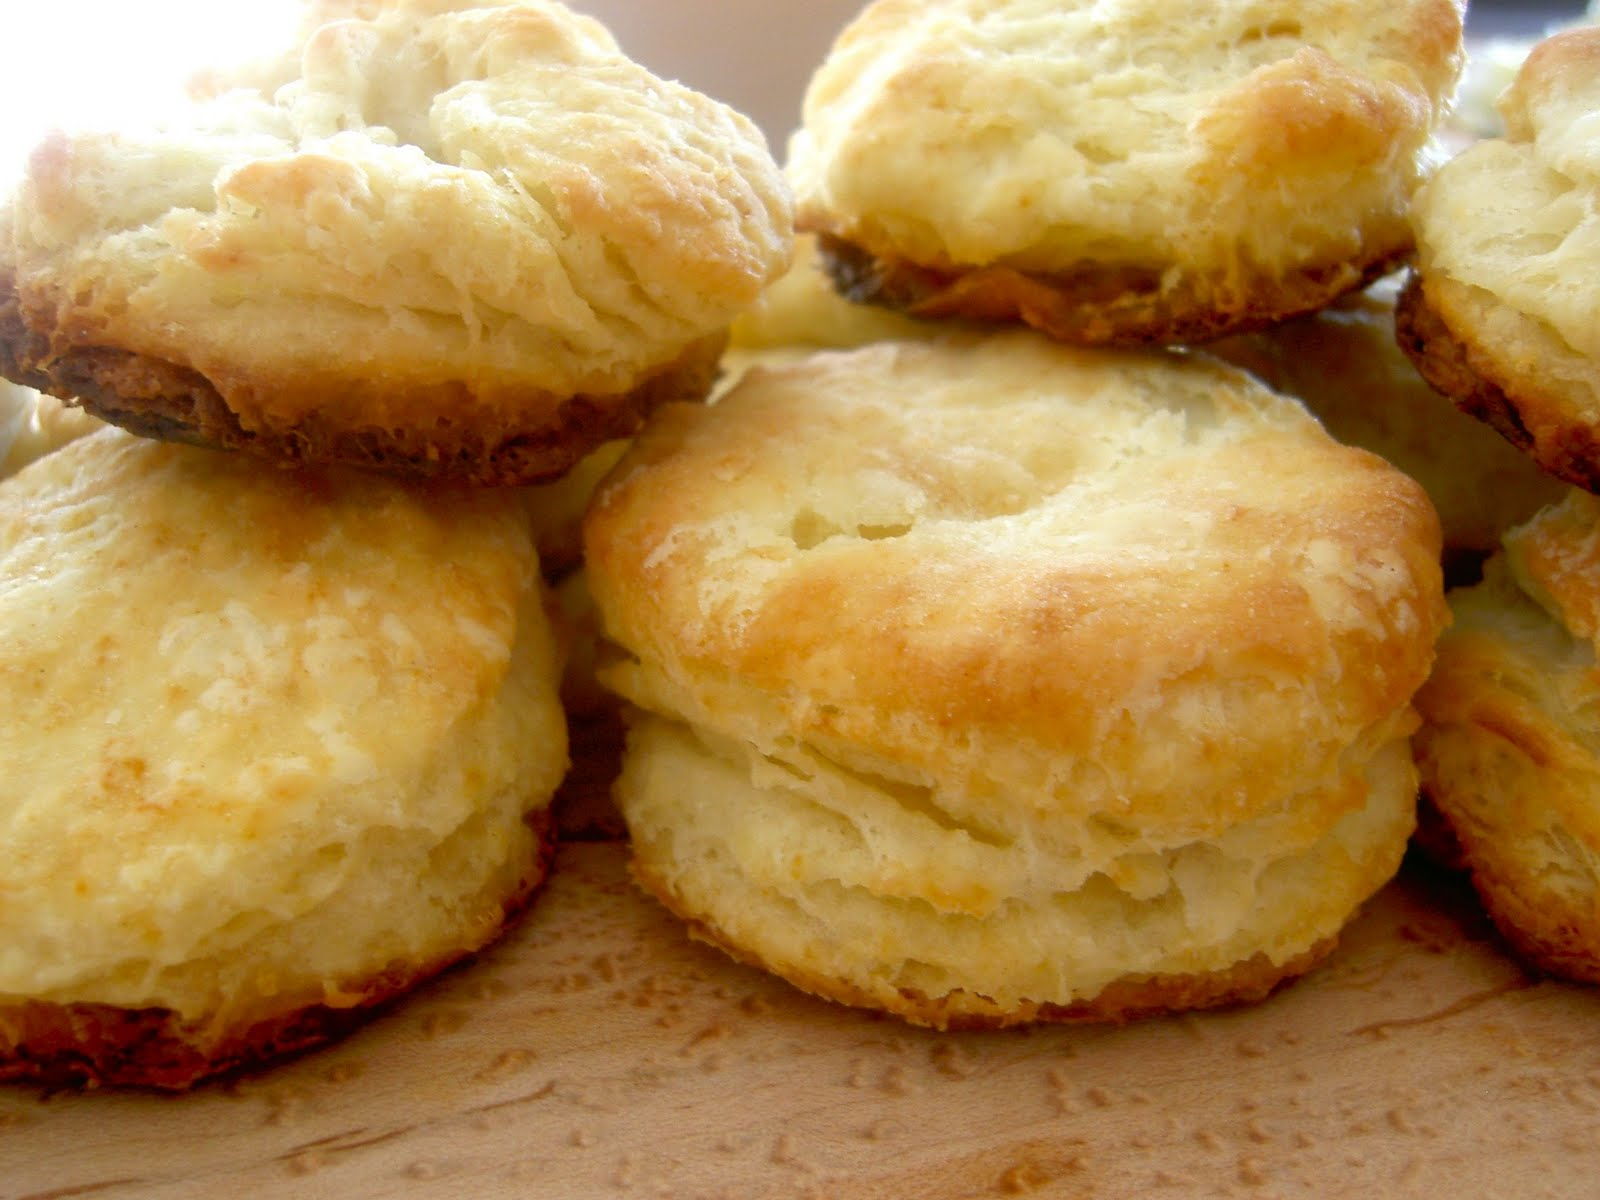 biscuits buttermilk biscuits buttermilk biscuits buttermilk biscuits ...